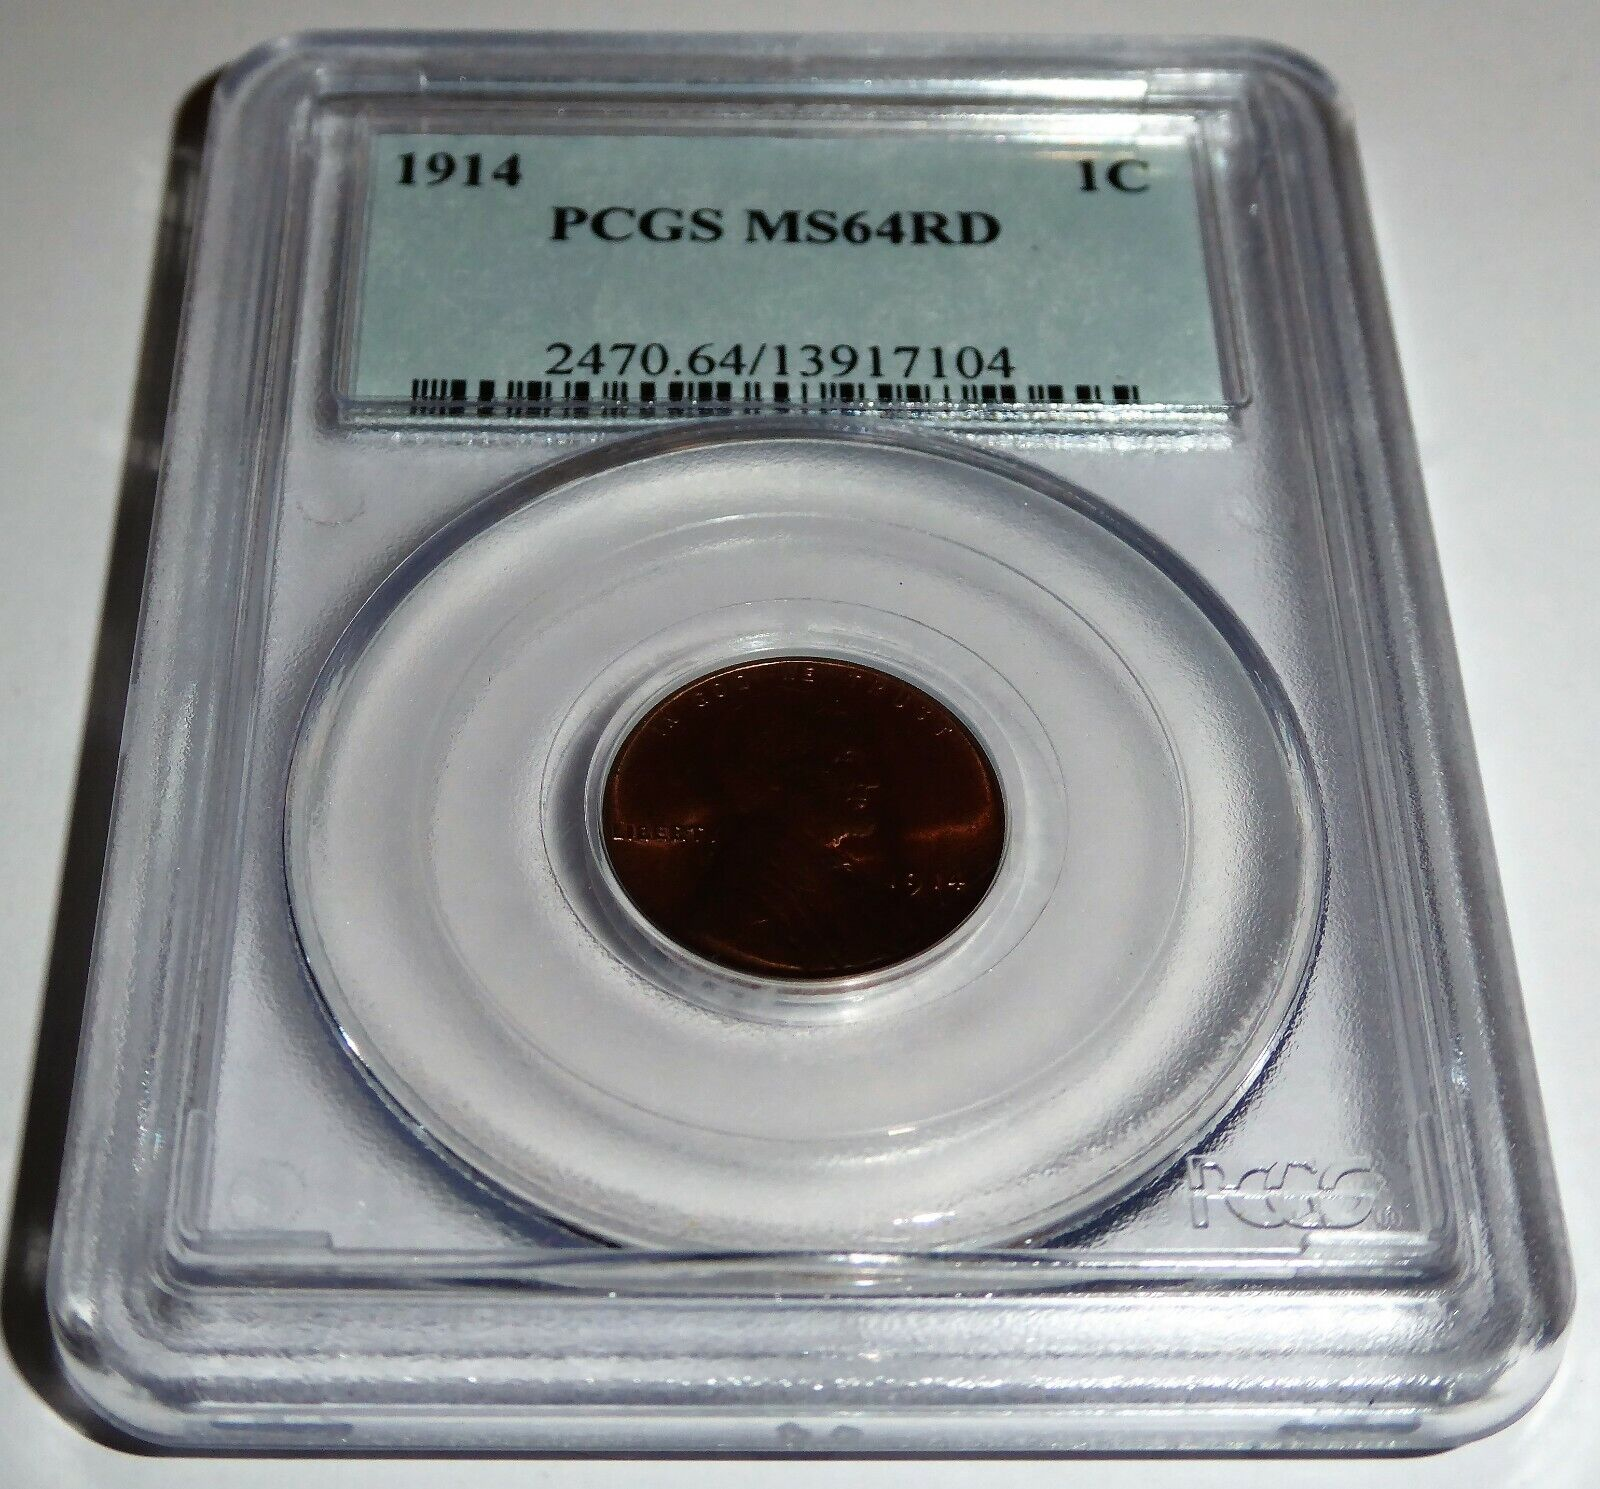 1914 1C PCGS MS64RD Lincoln Wheat Small Cents One Penny Cent Coin 💎